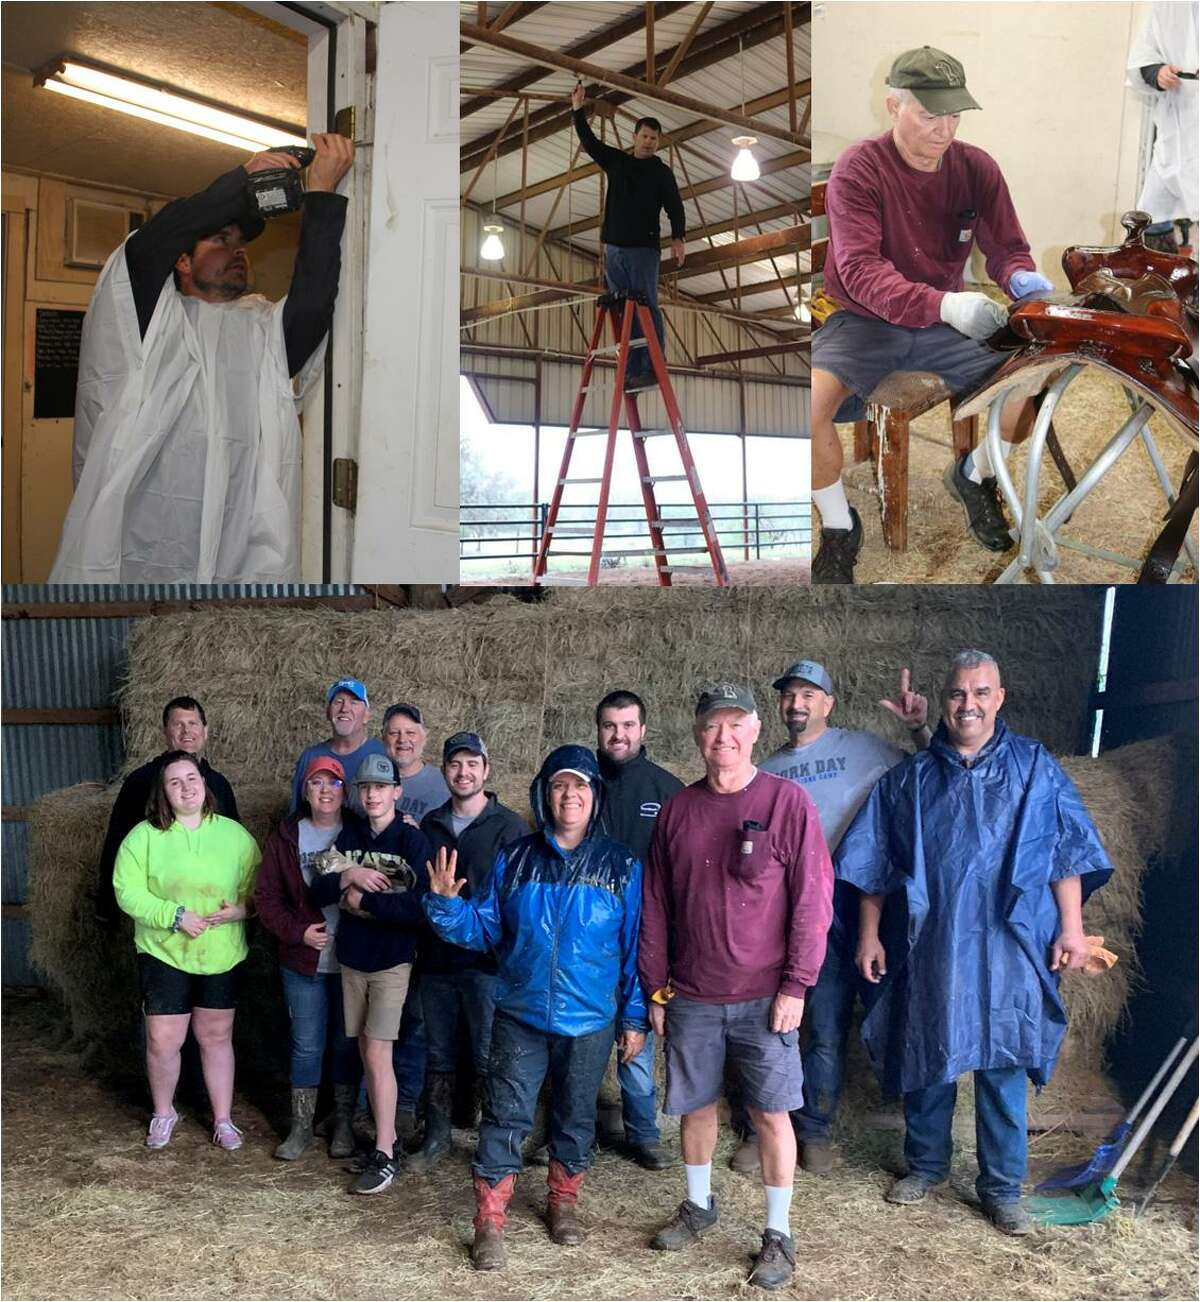 Despite nasty weather members of the Conroe Noon Lions Club made their annual trek to the Texas Lions Camp in Kerrville last week for Work Weekend. There they completed work tasks in preparations for summer camping sessions for physically handicap, diabetic and children with Downs syndrome.